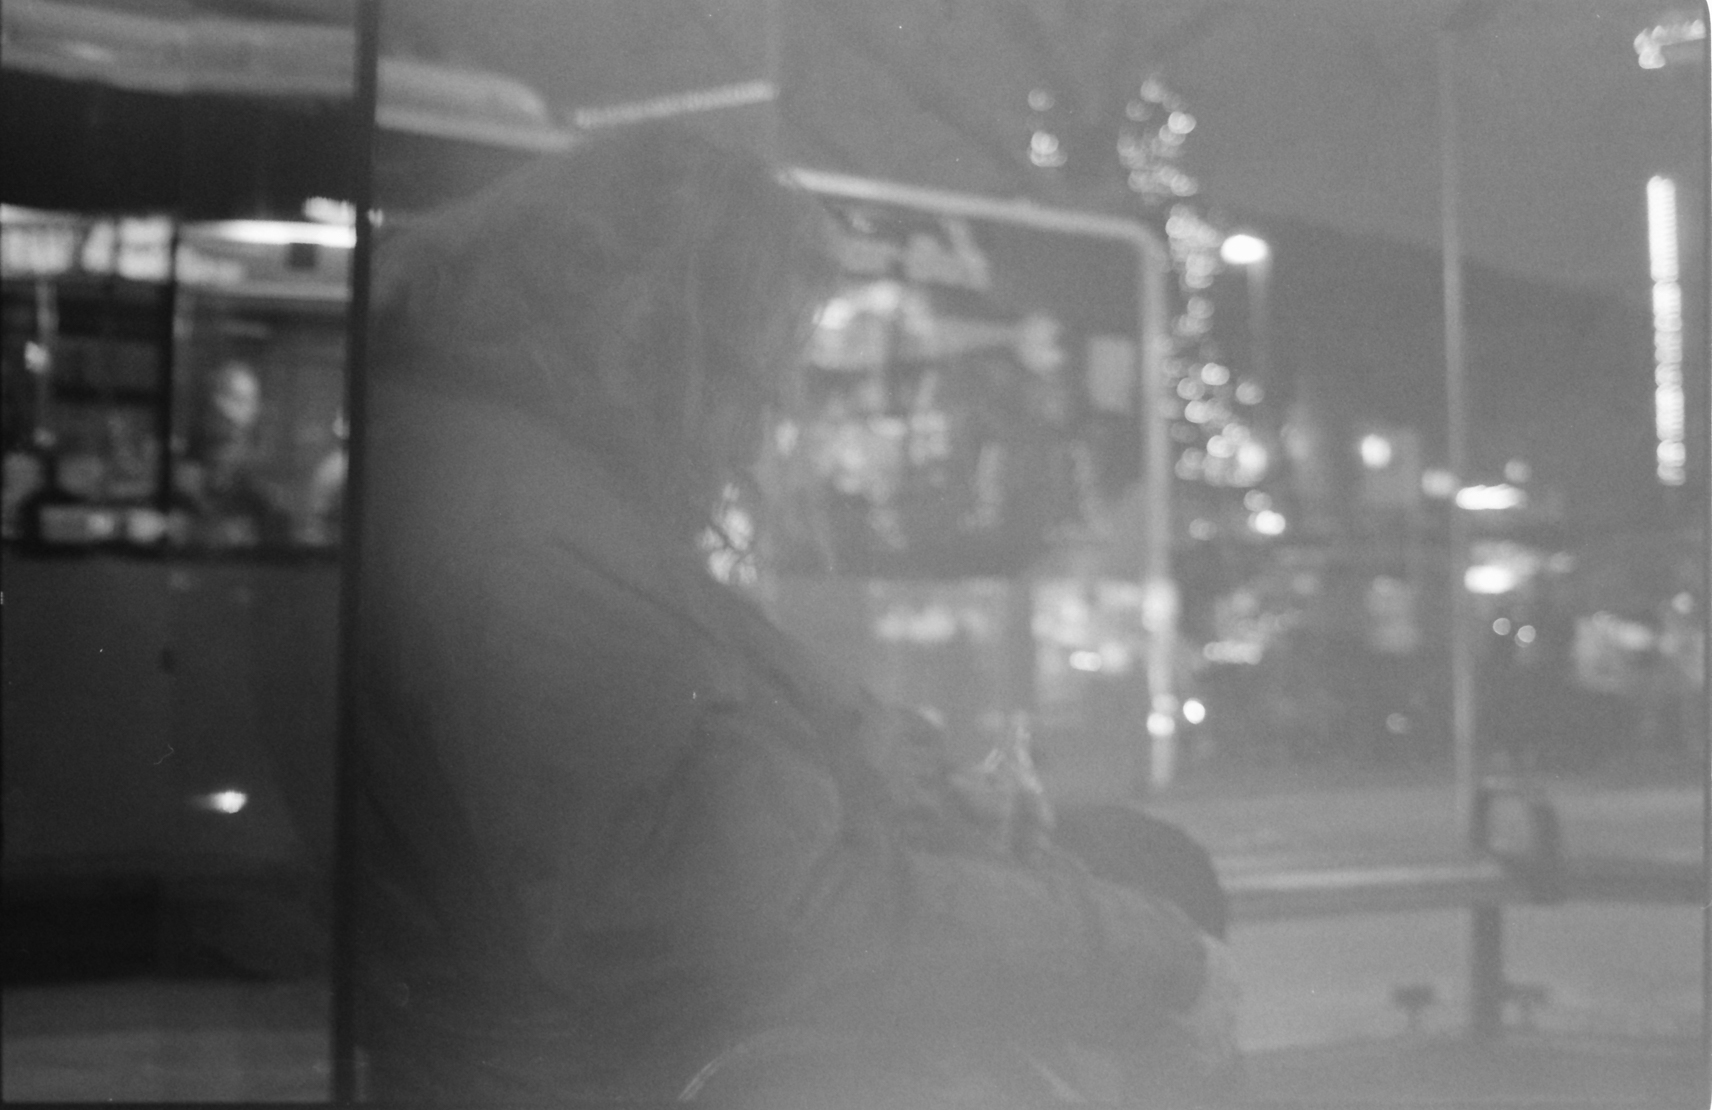 < Reflets > - Film: ilford delta 400 - Nikon F4s - Heidelberg, Germany; Photo Rike Simoes